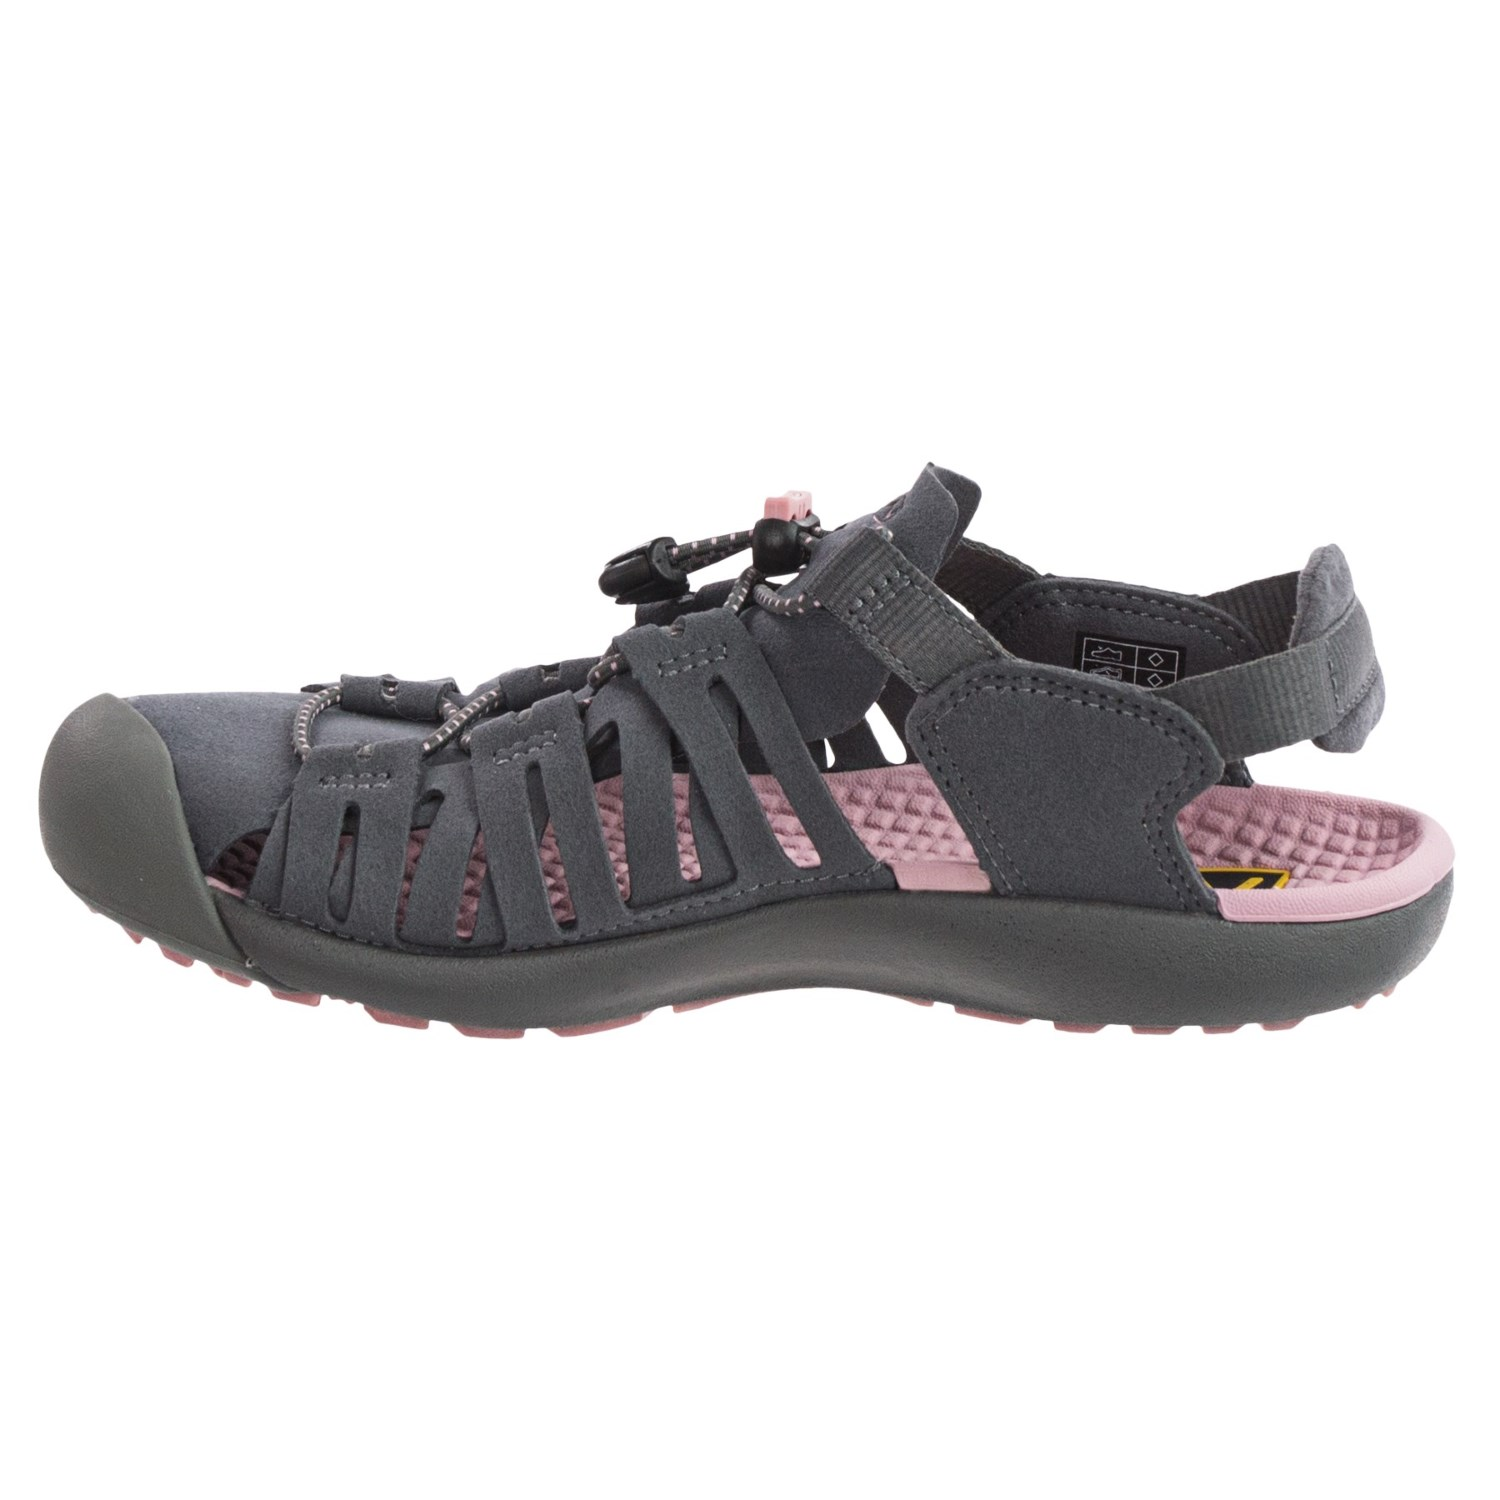 Shoes online australia ecco